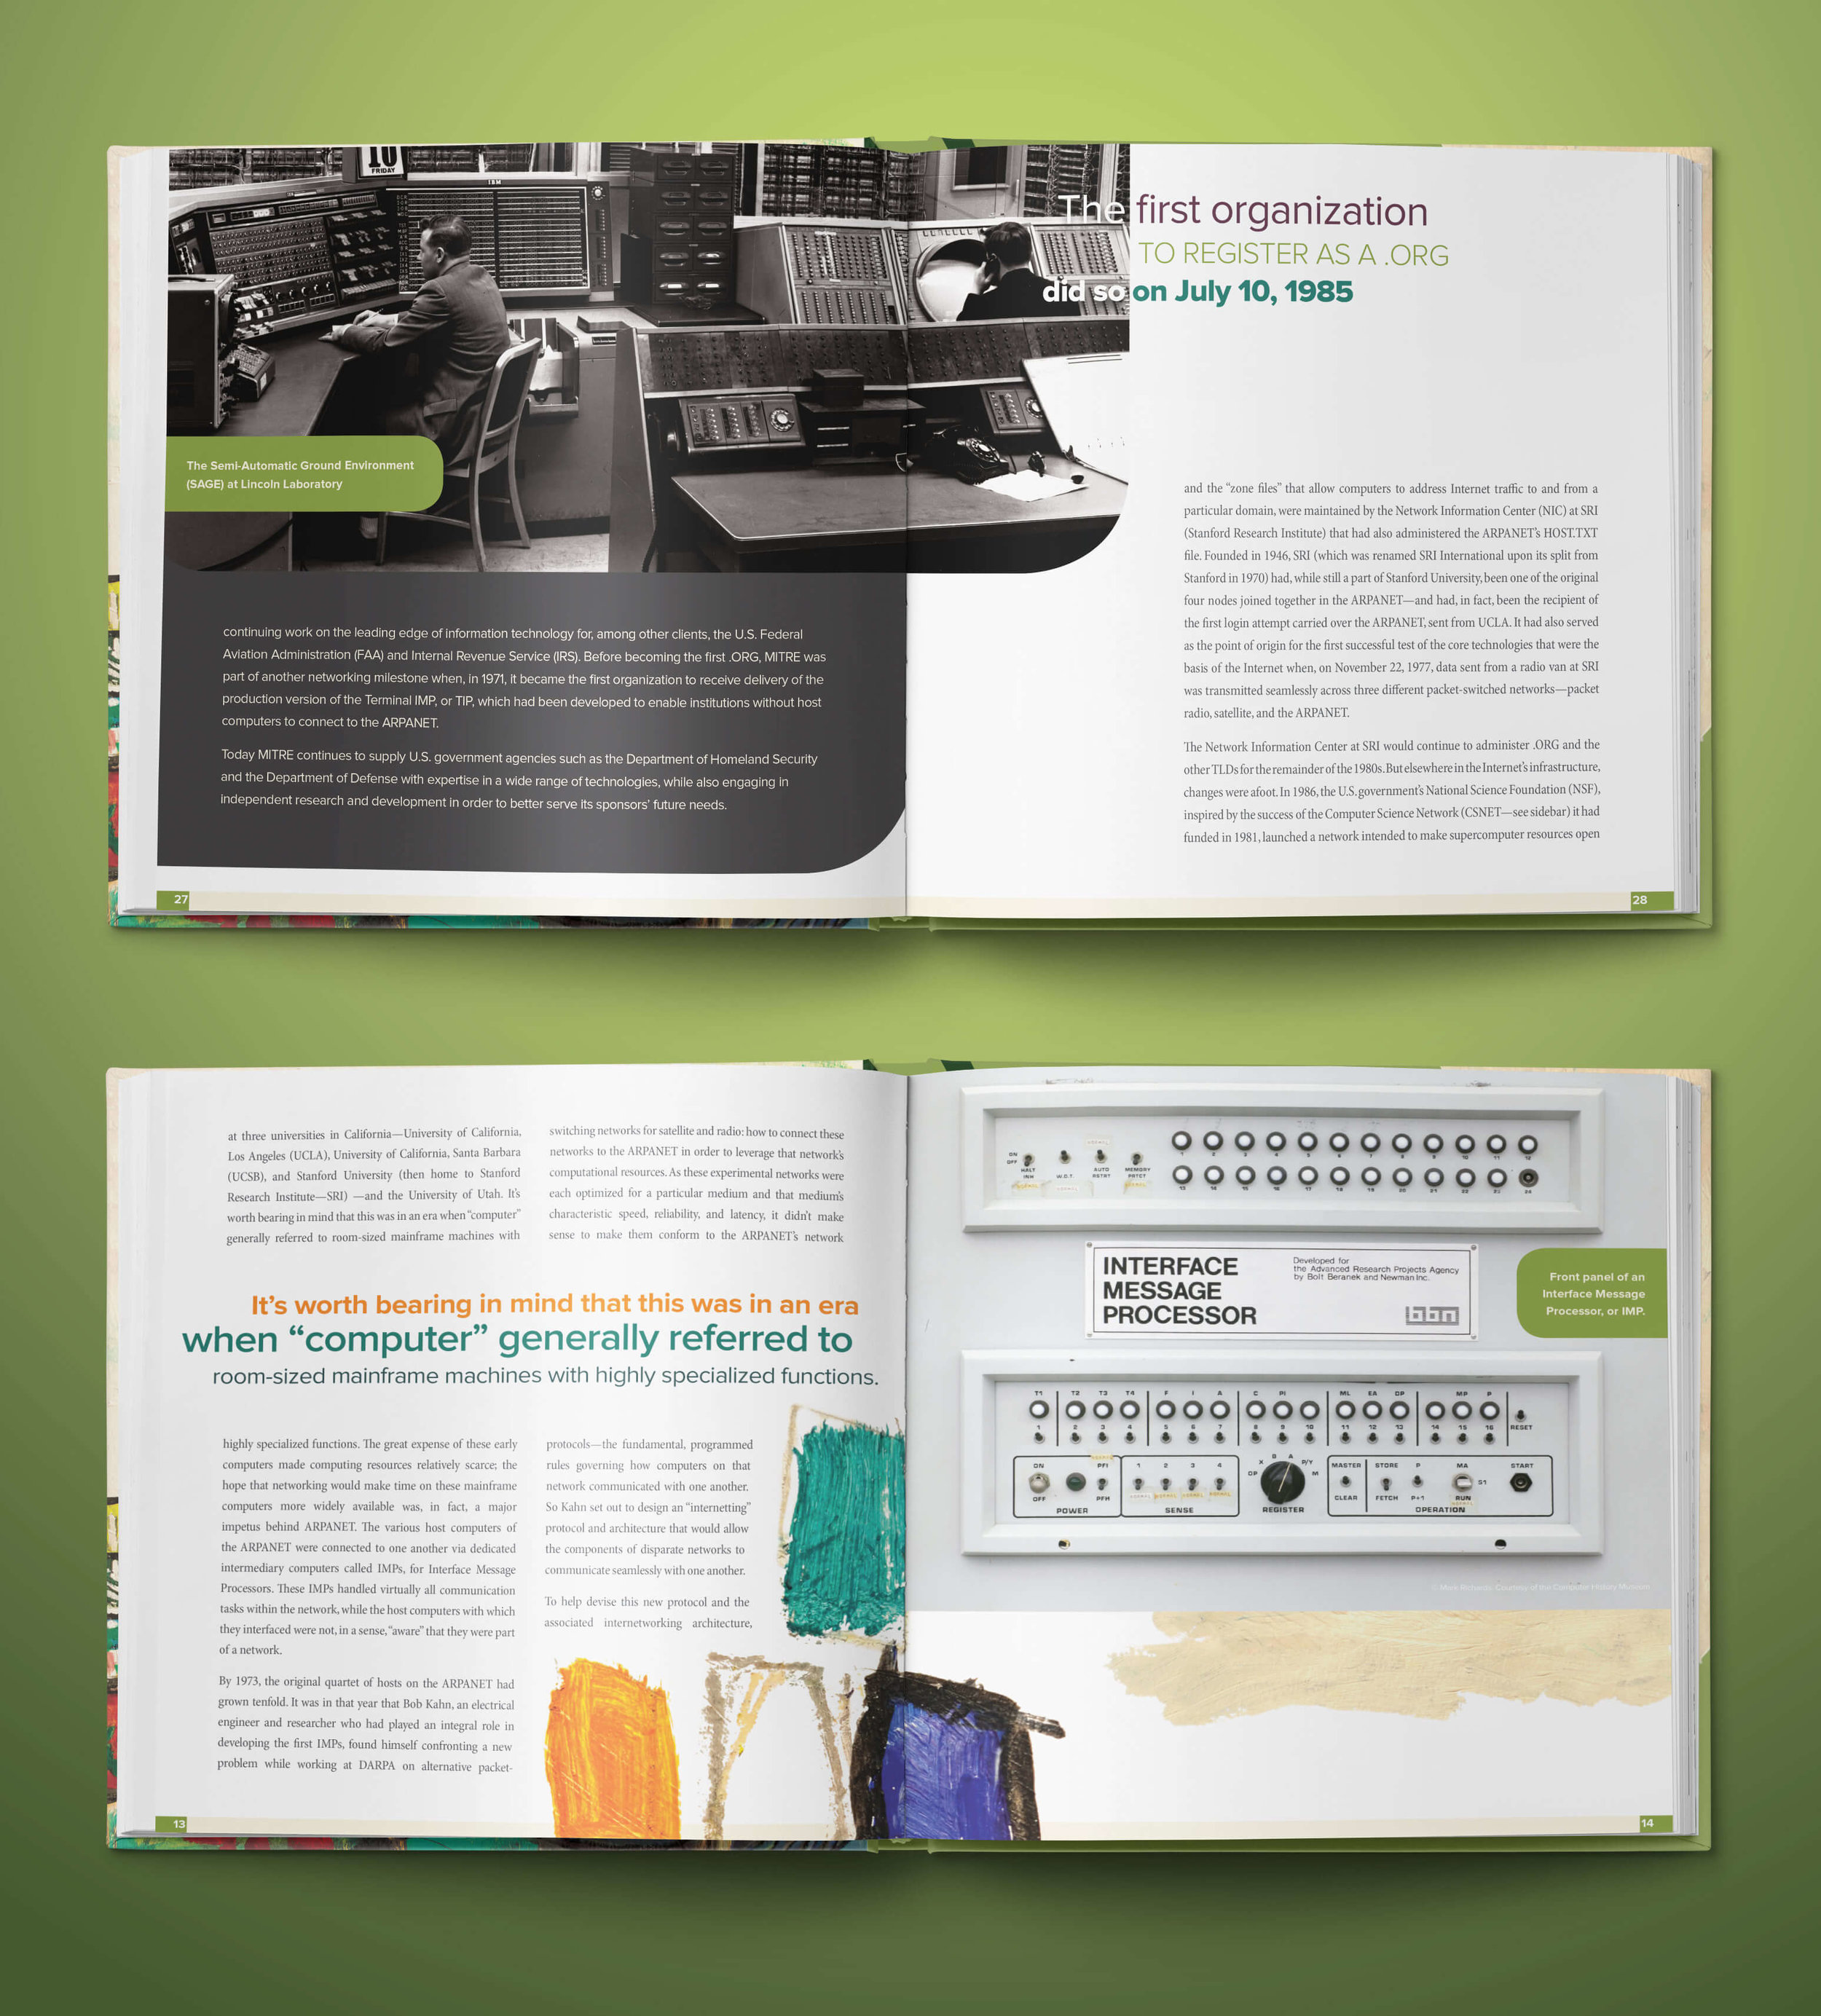 A closeup of the .org 25th anniversary book interior spread, featuring the Interface Message Processor (IMP).